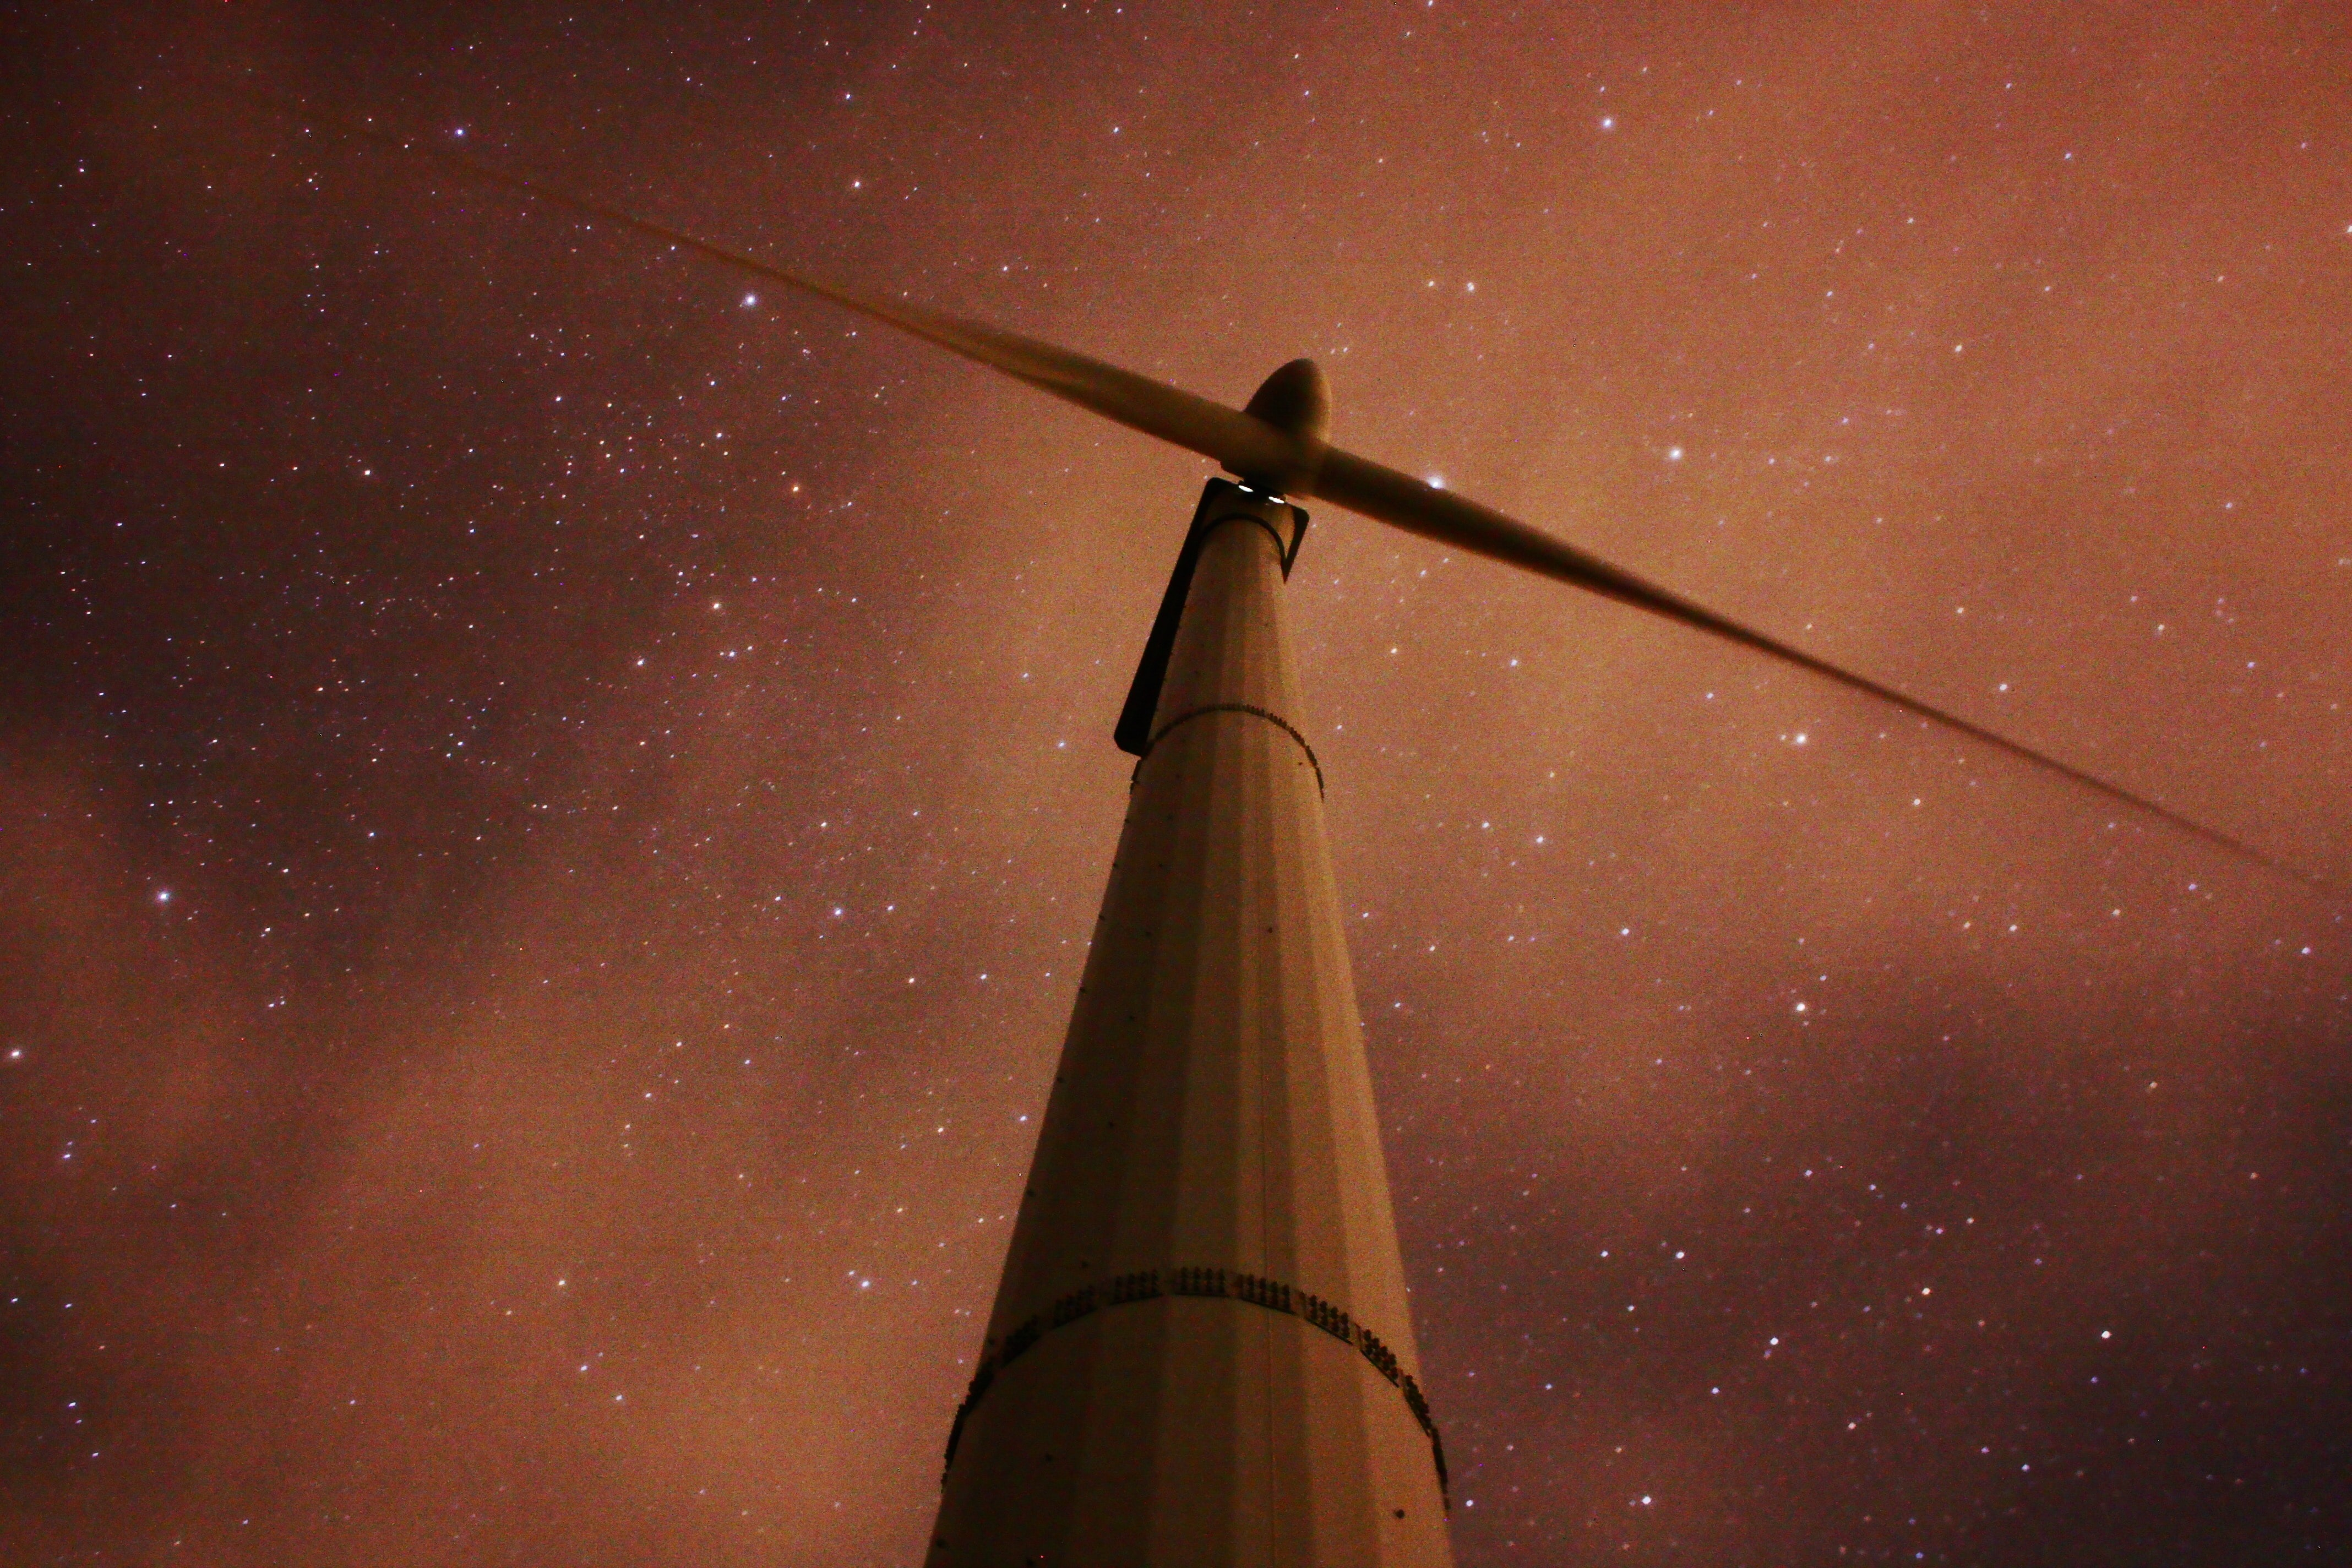 A low-angle shot of a wind turbine seen against a starry sky